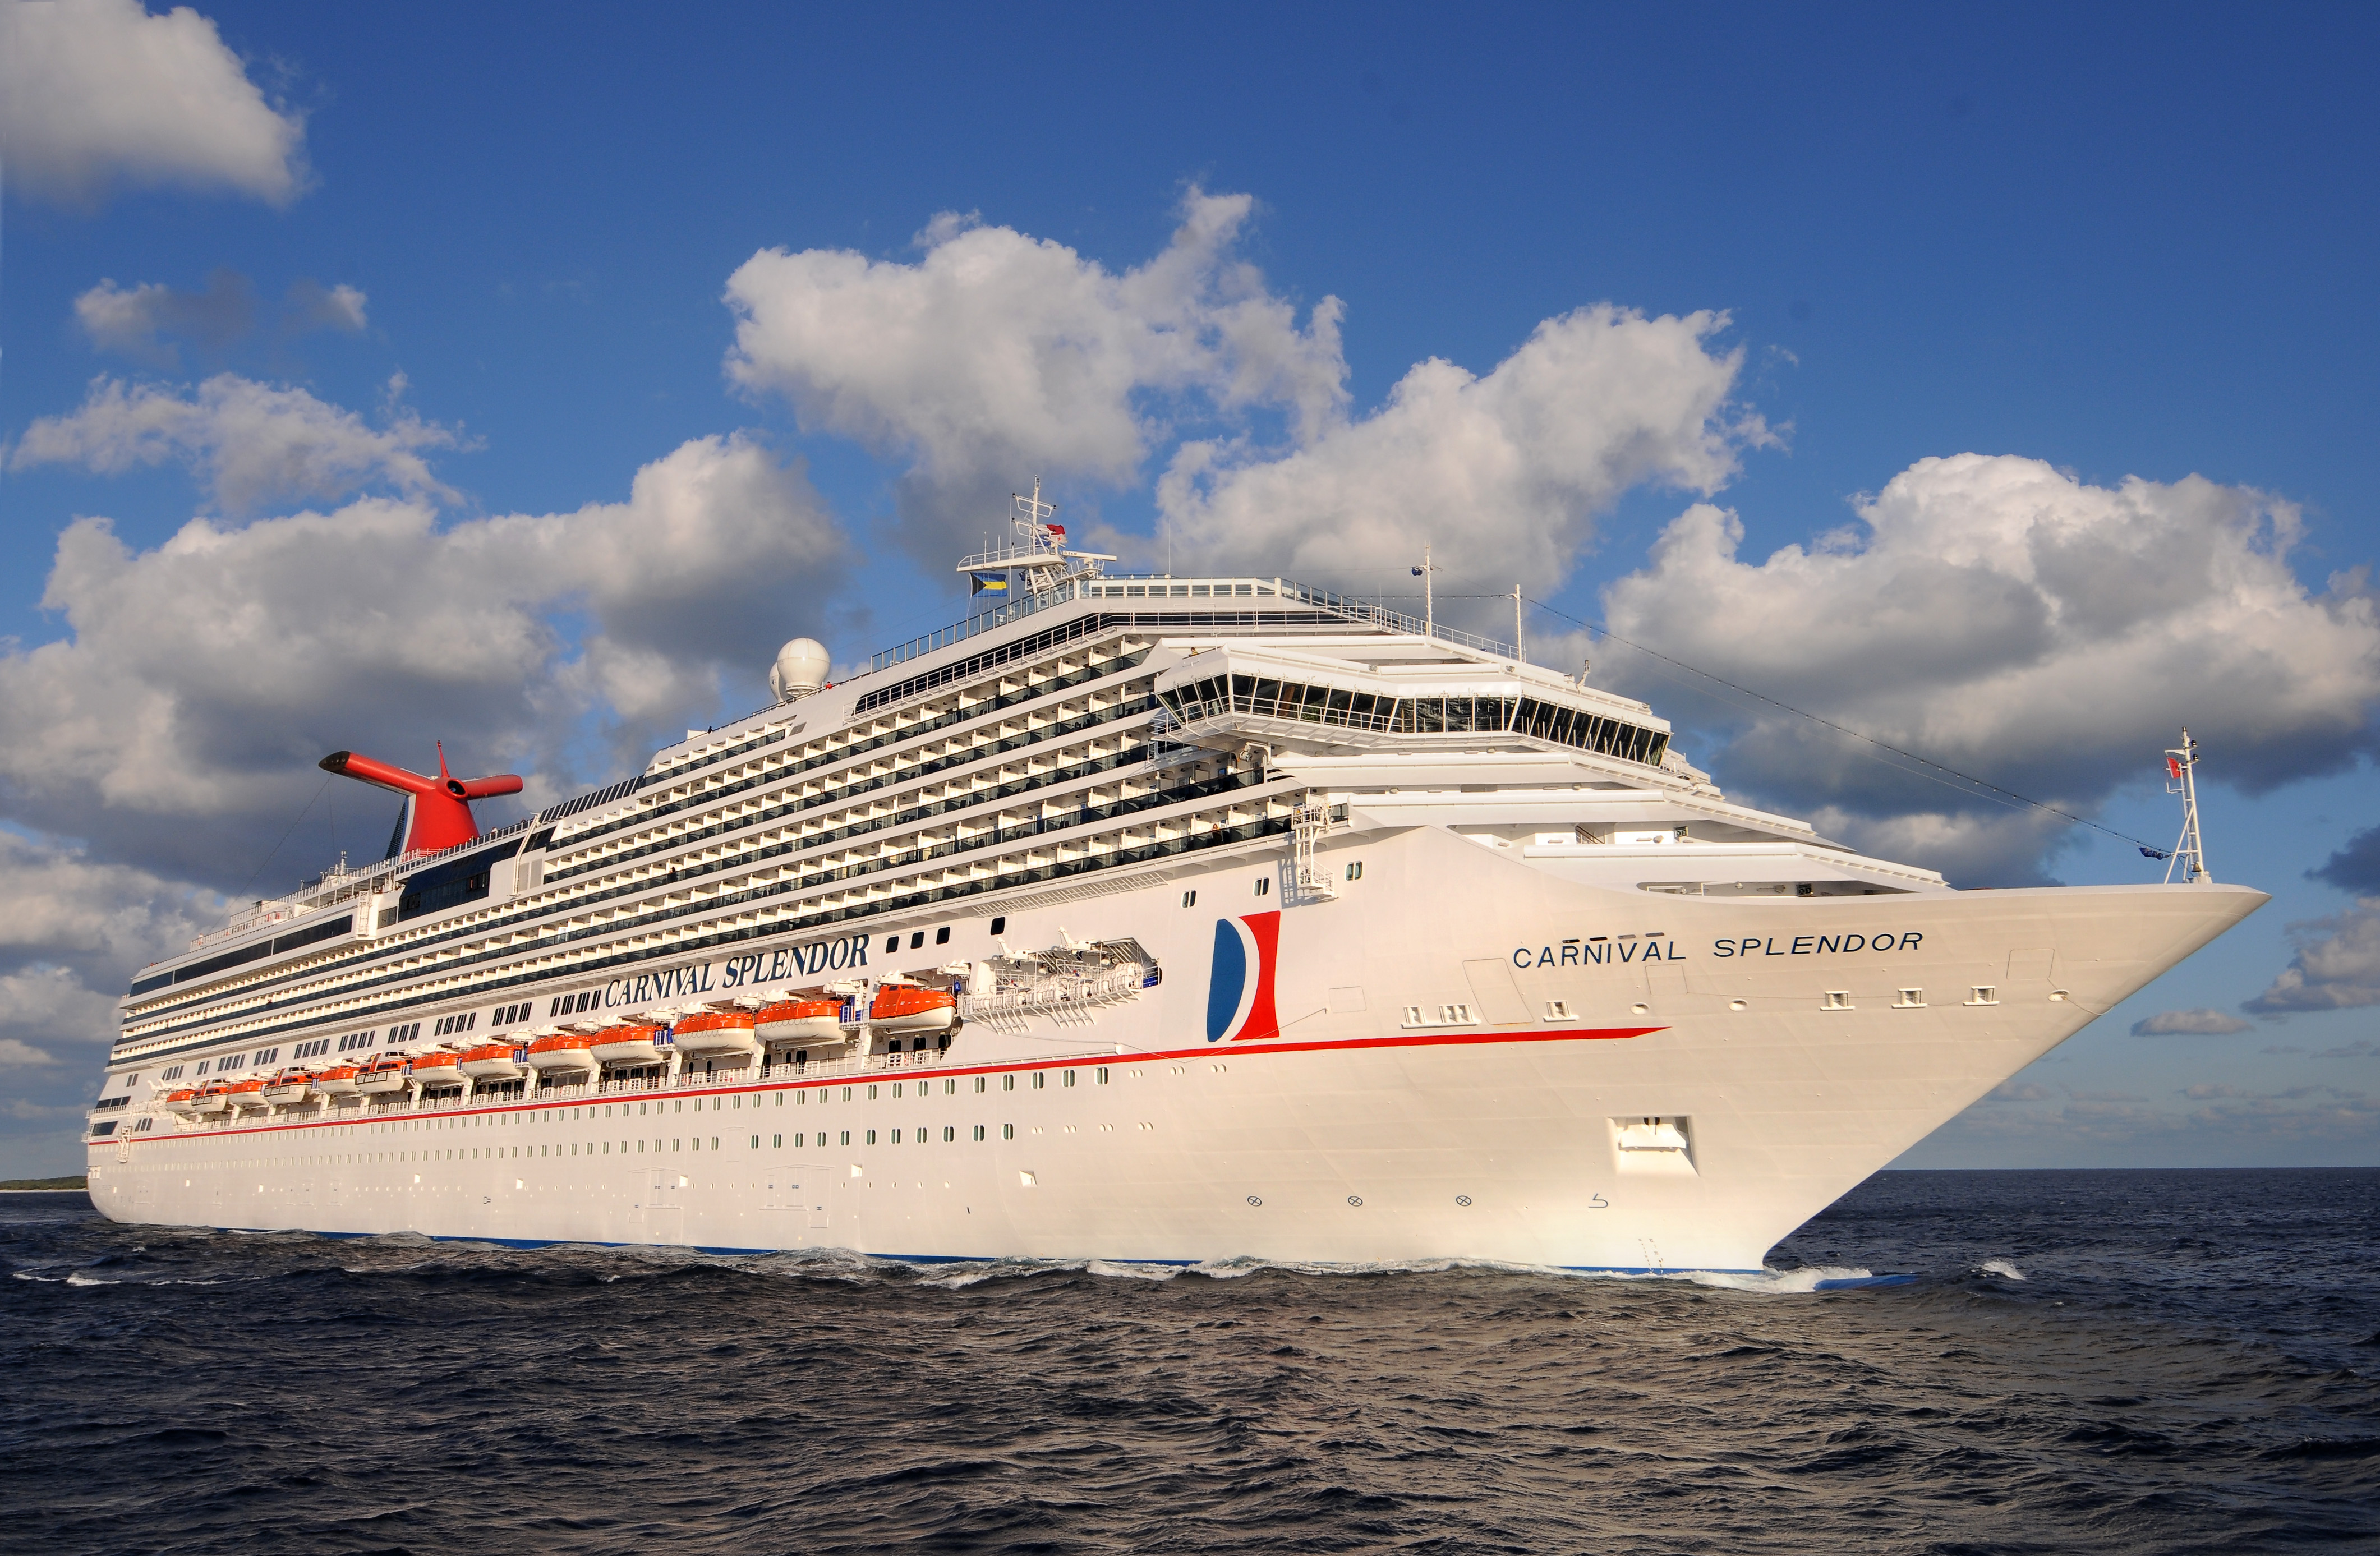 Carnival Splendor To Reposition To Sydney In 2019, Becoming Newest And Largest Ship Based Year-Round In Australia